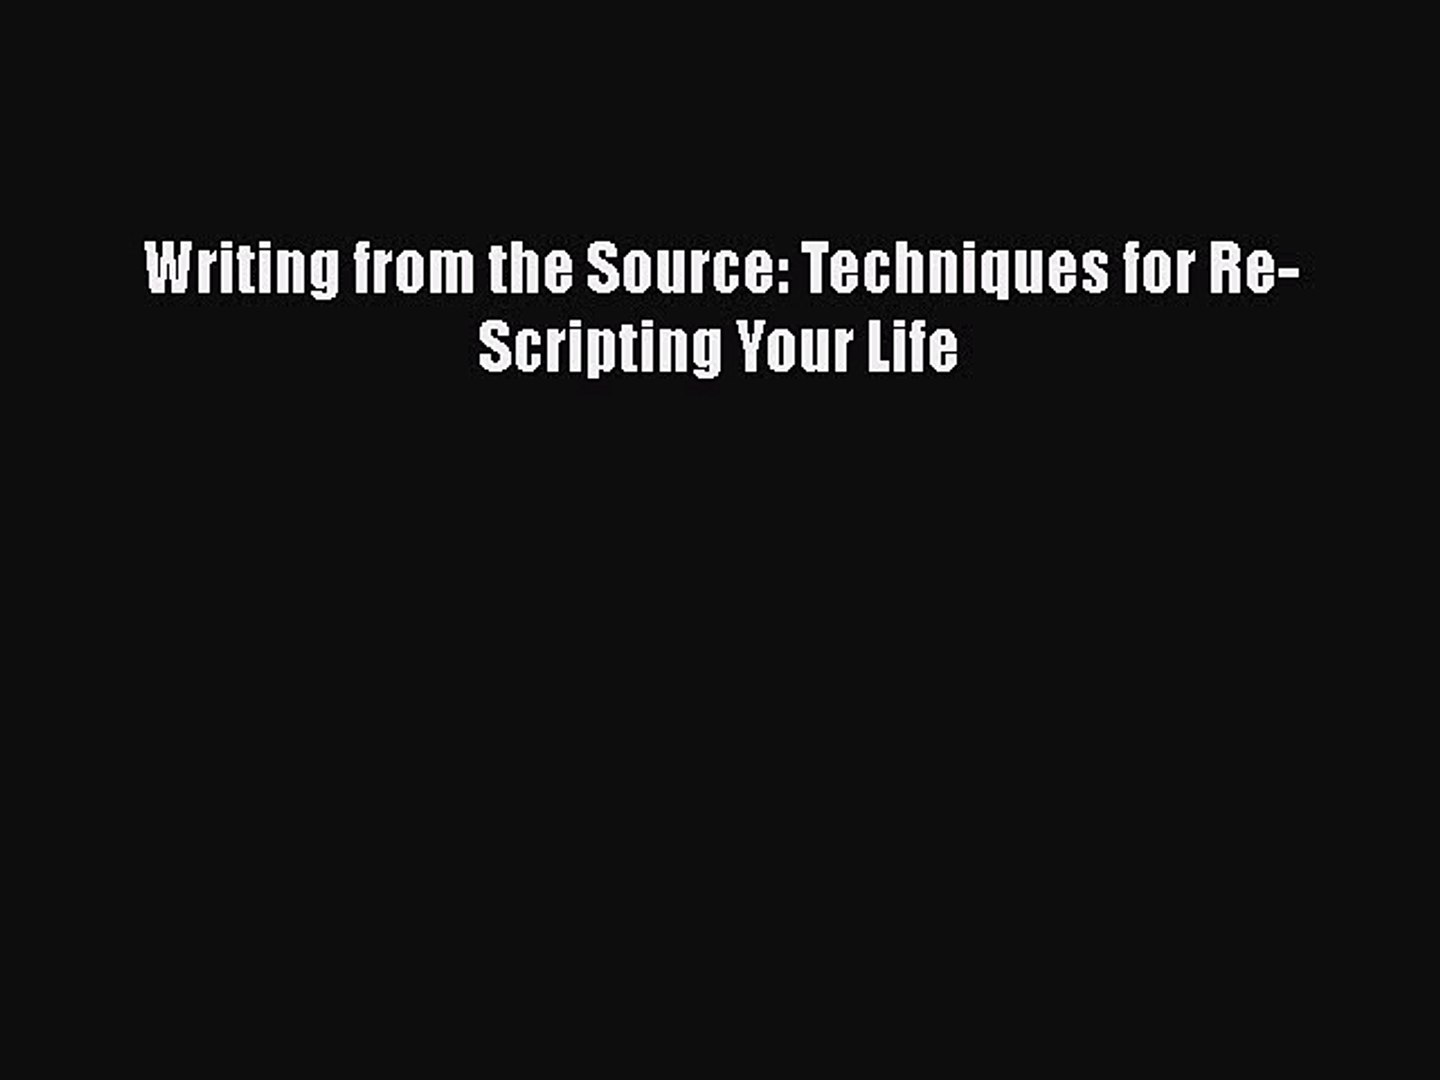 Techniques for Re-Scripting Your Life Writing from the Source